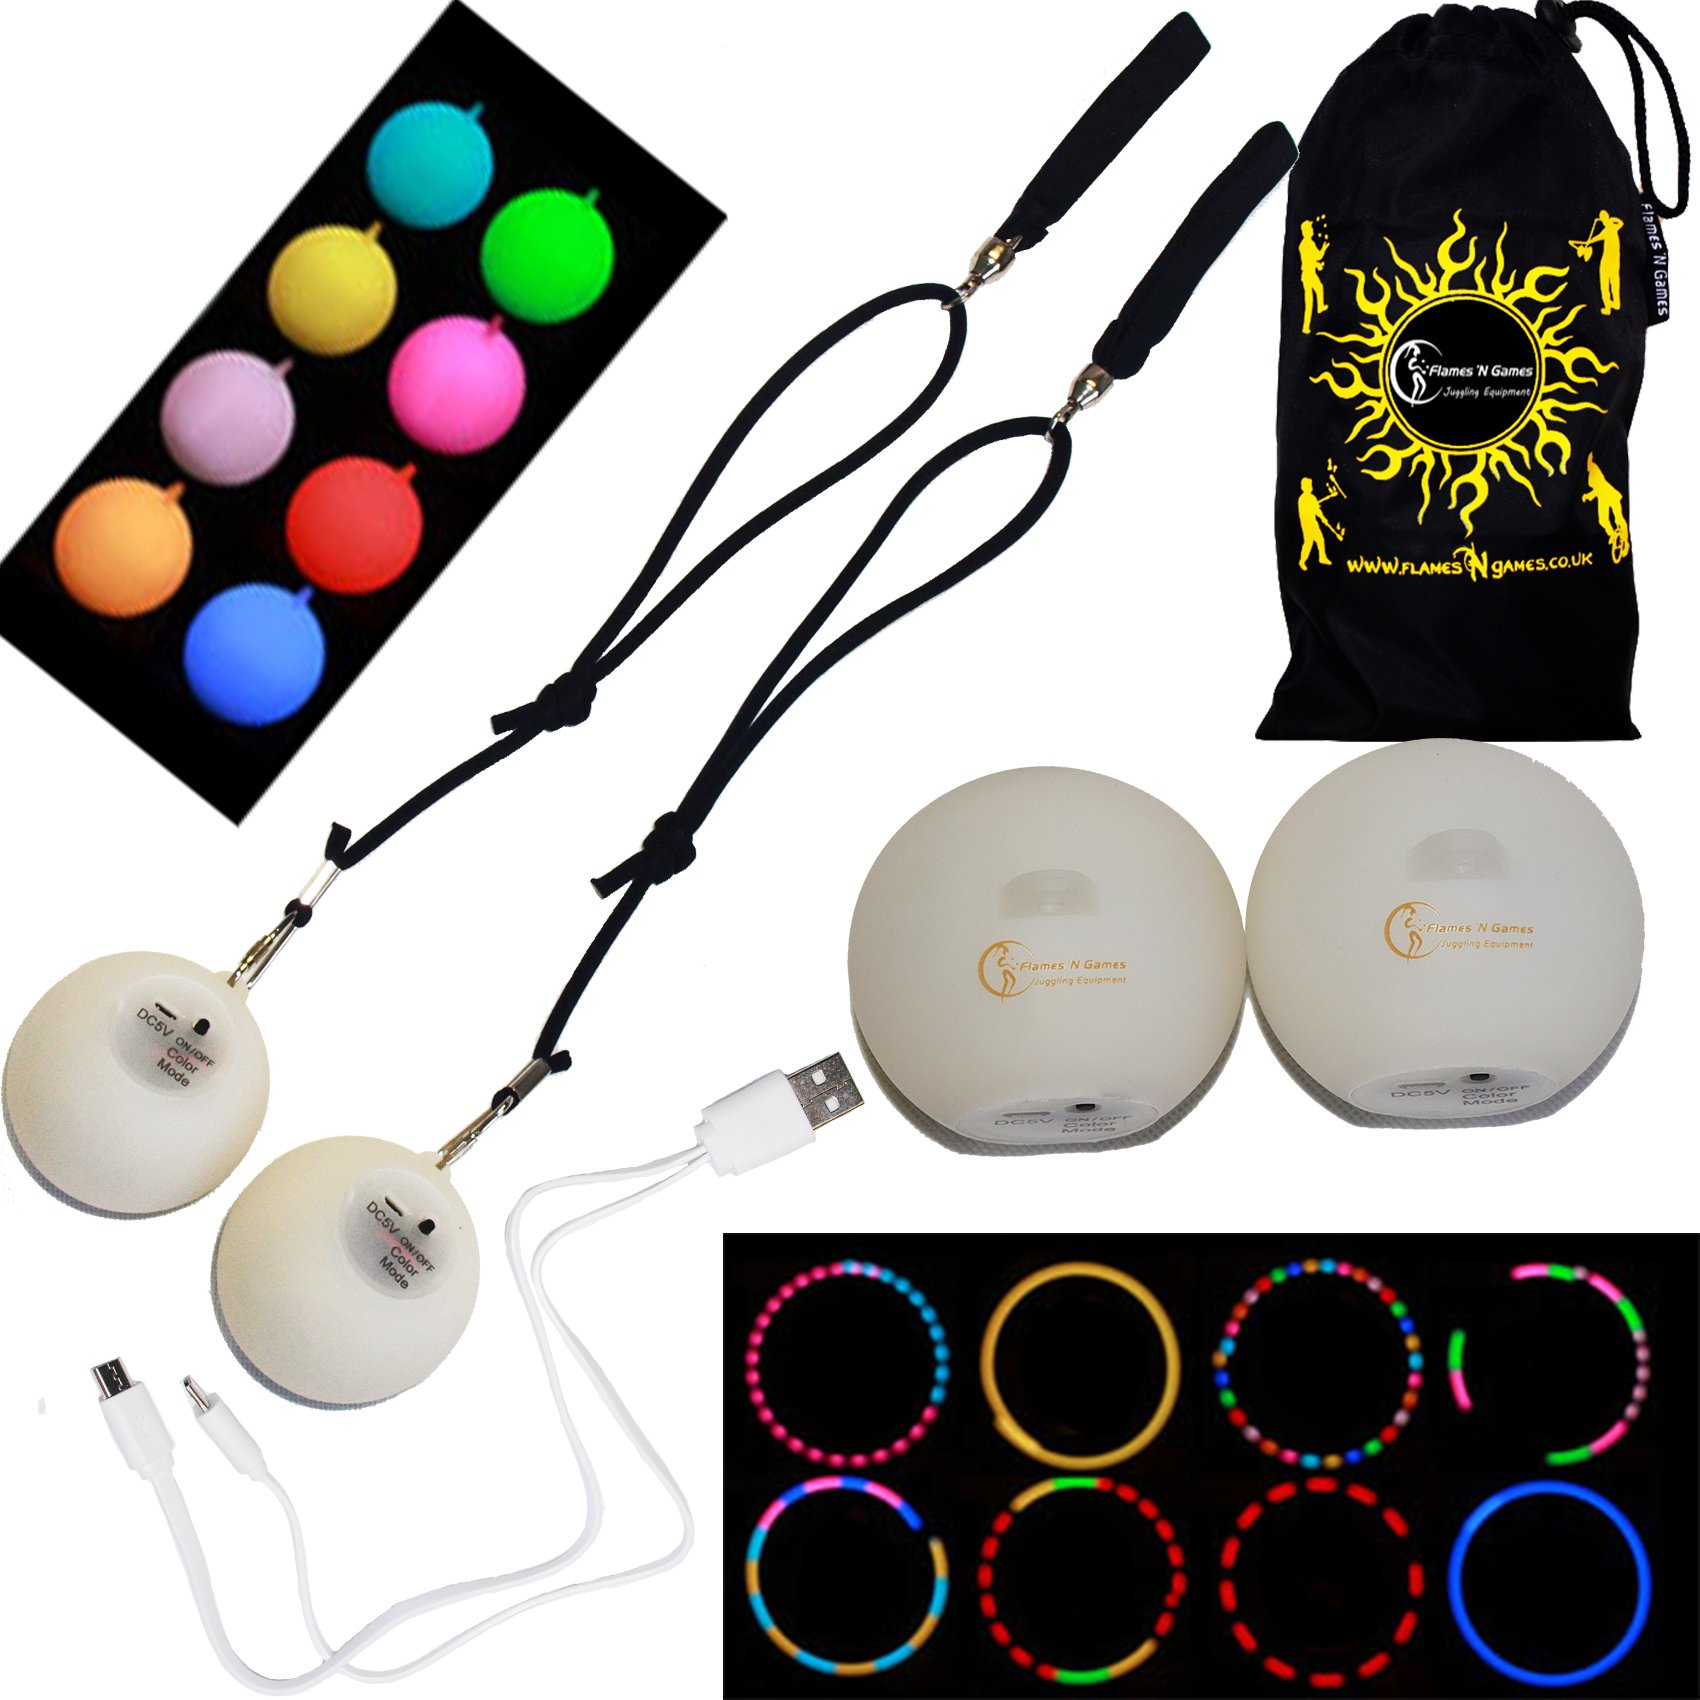 Multifunction LED Spinning POI Rechargeable With Micro USB Charging Cable + Travel Bag! Bright Light Up Glow Poi Perfect Night Time Pois For All Ages